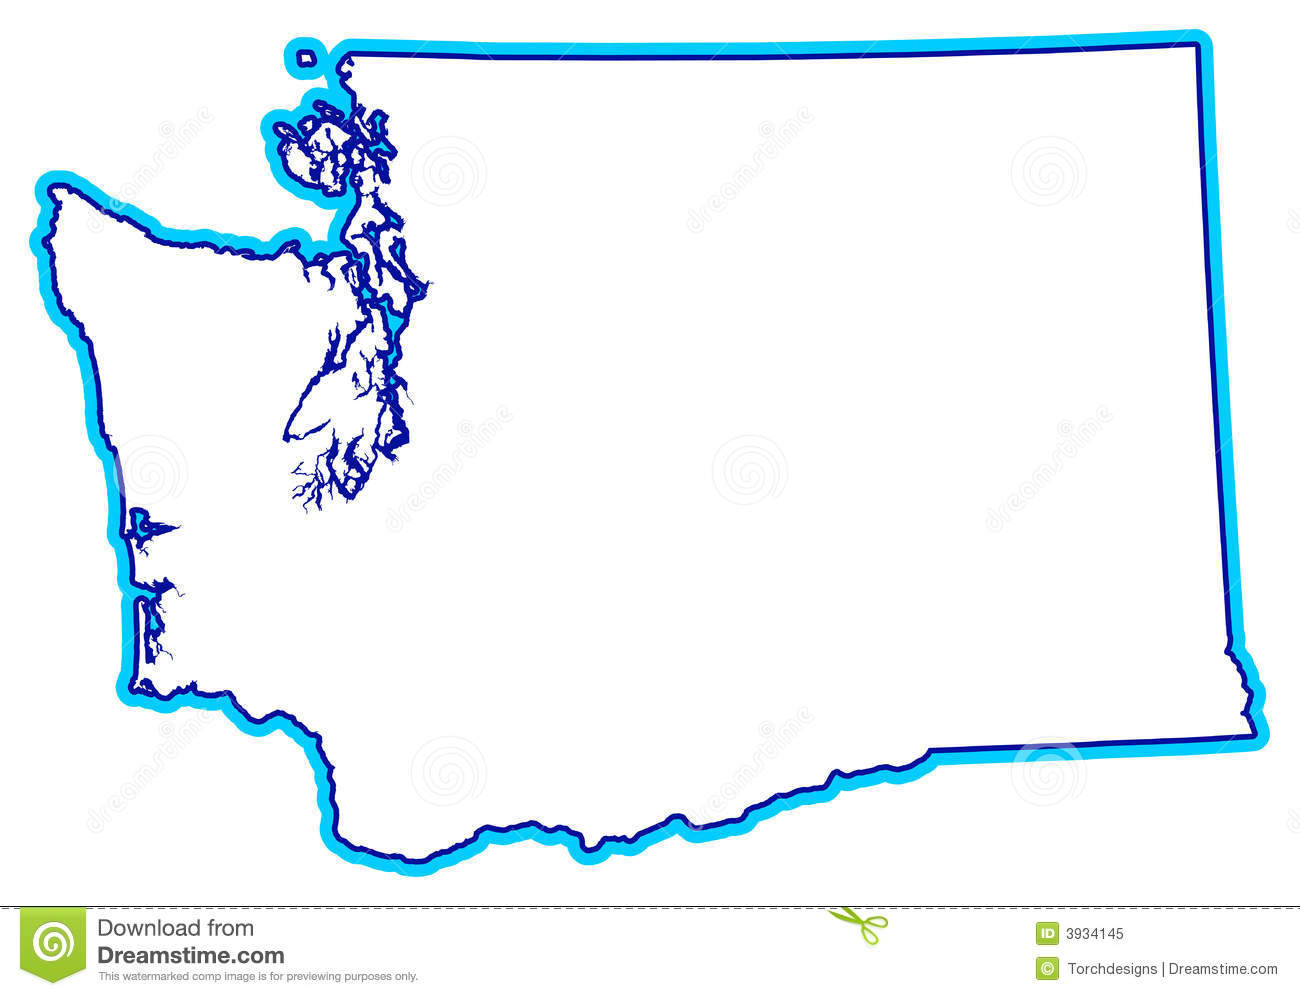 State Of Washington Outline Royalty Free Stock Photo